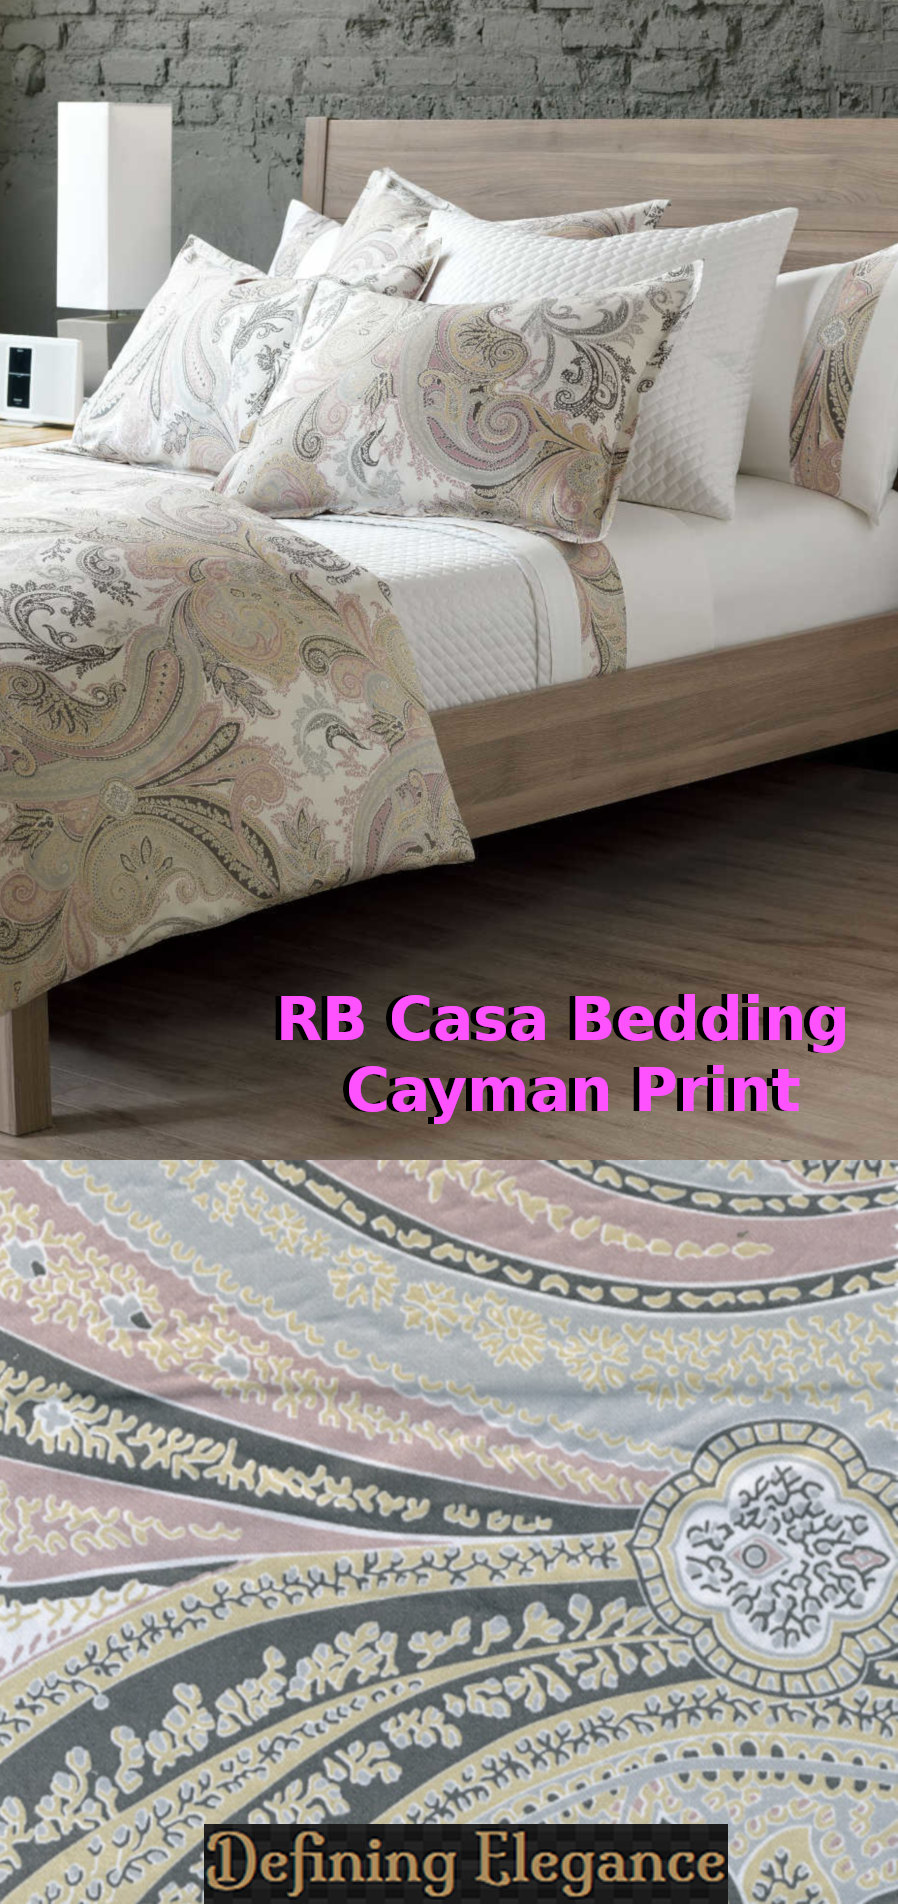 RB Casa Cayman - Sateen Bedding